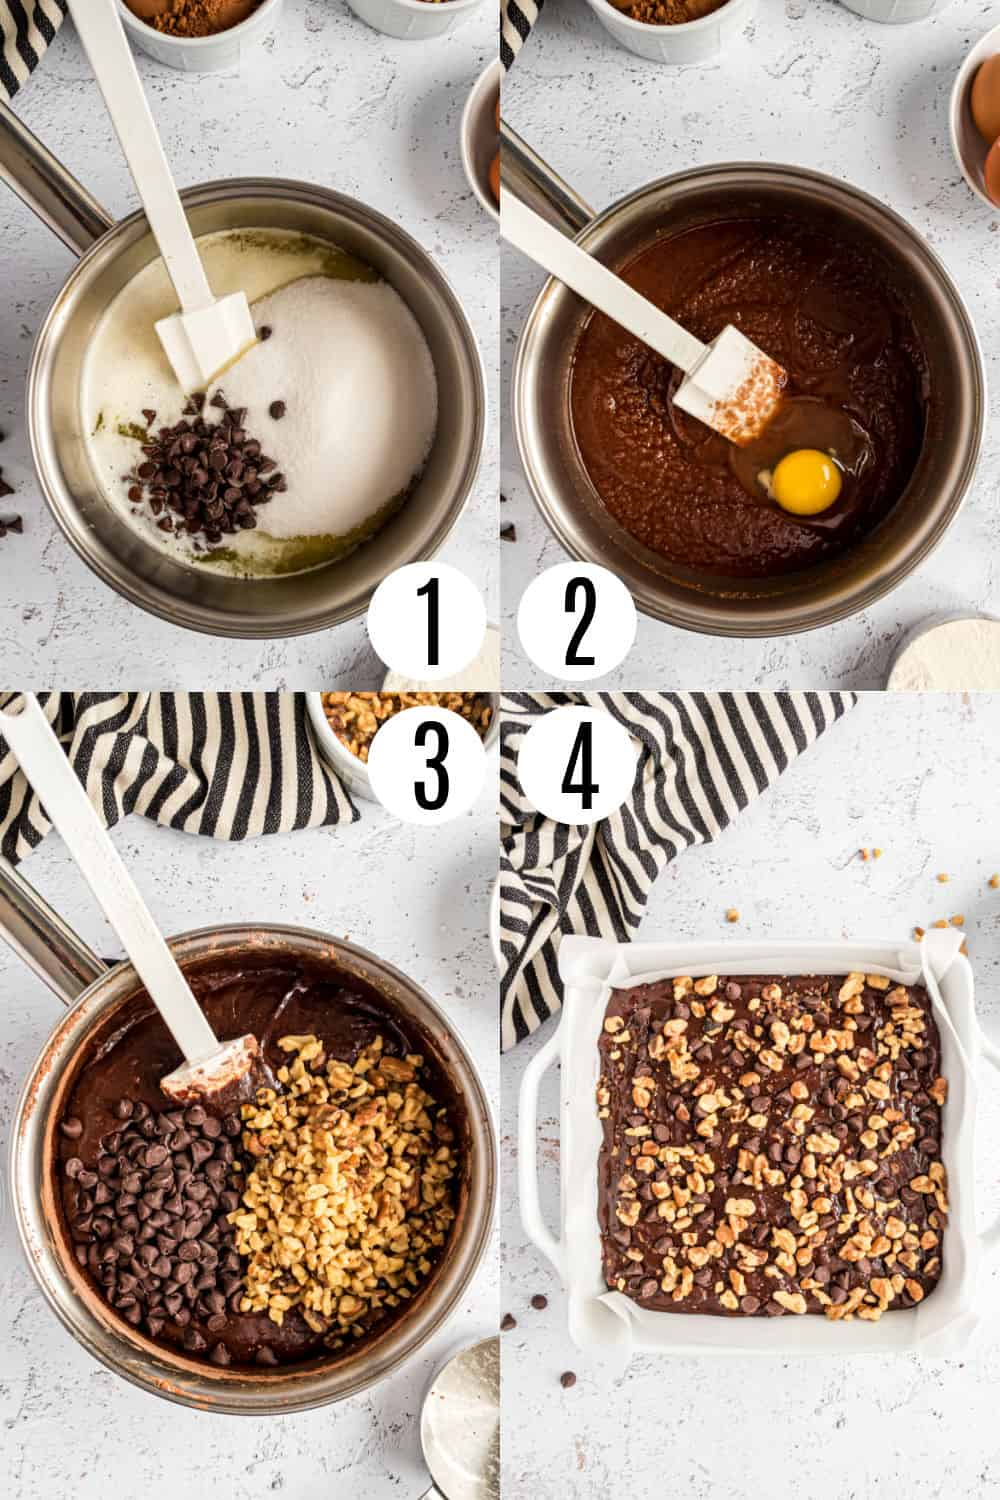 Step by step photos showing how to make walnut brownies.